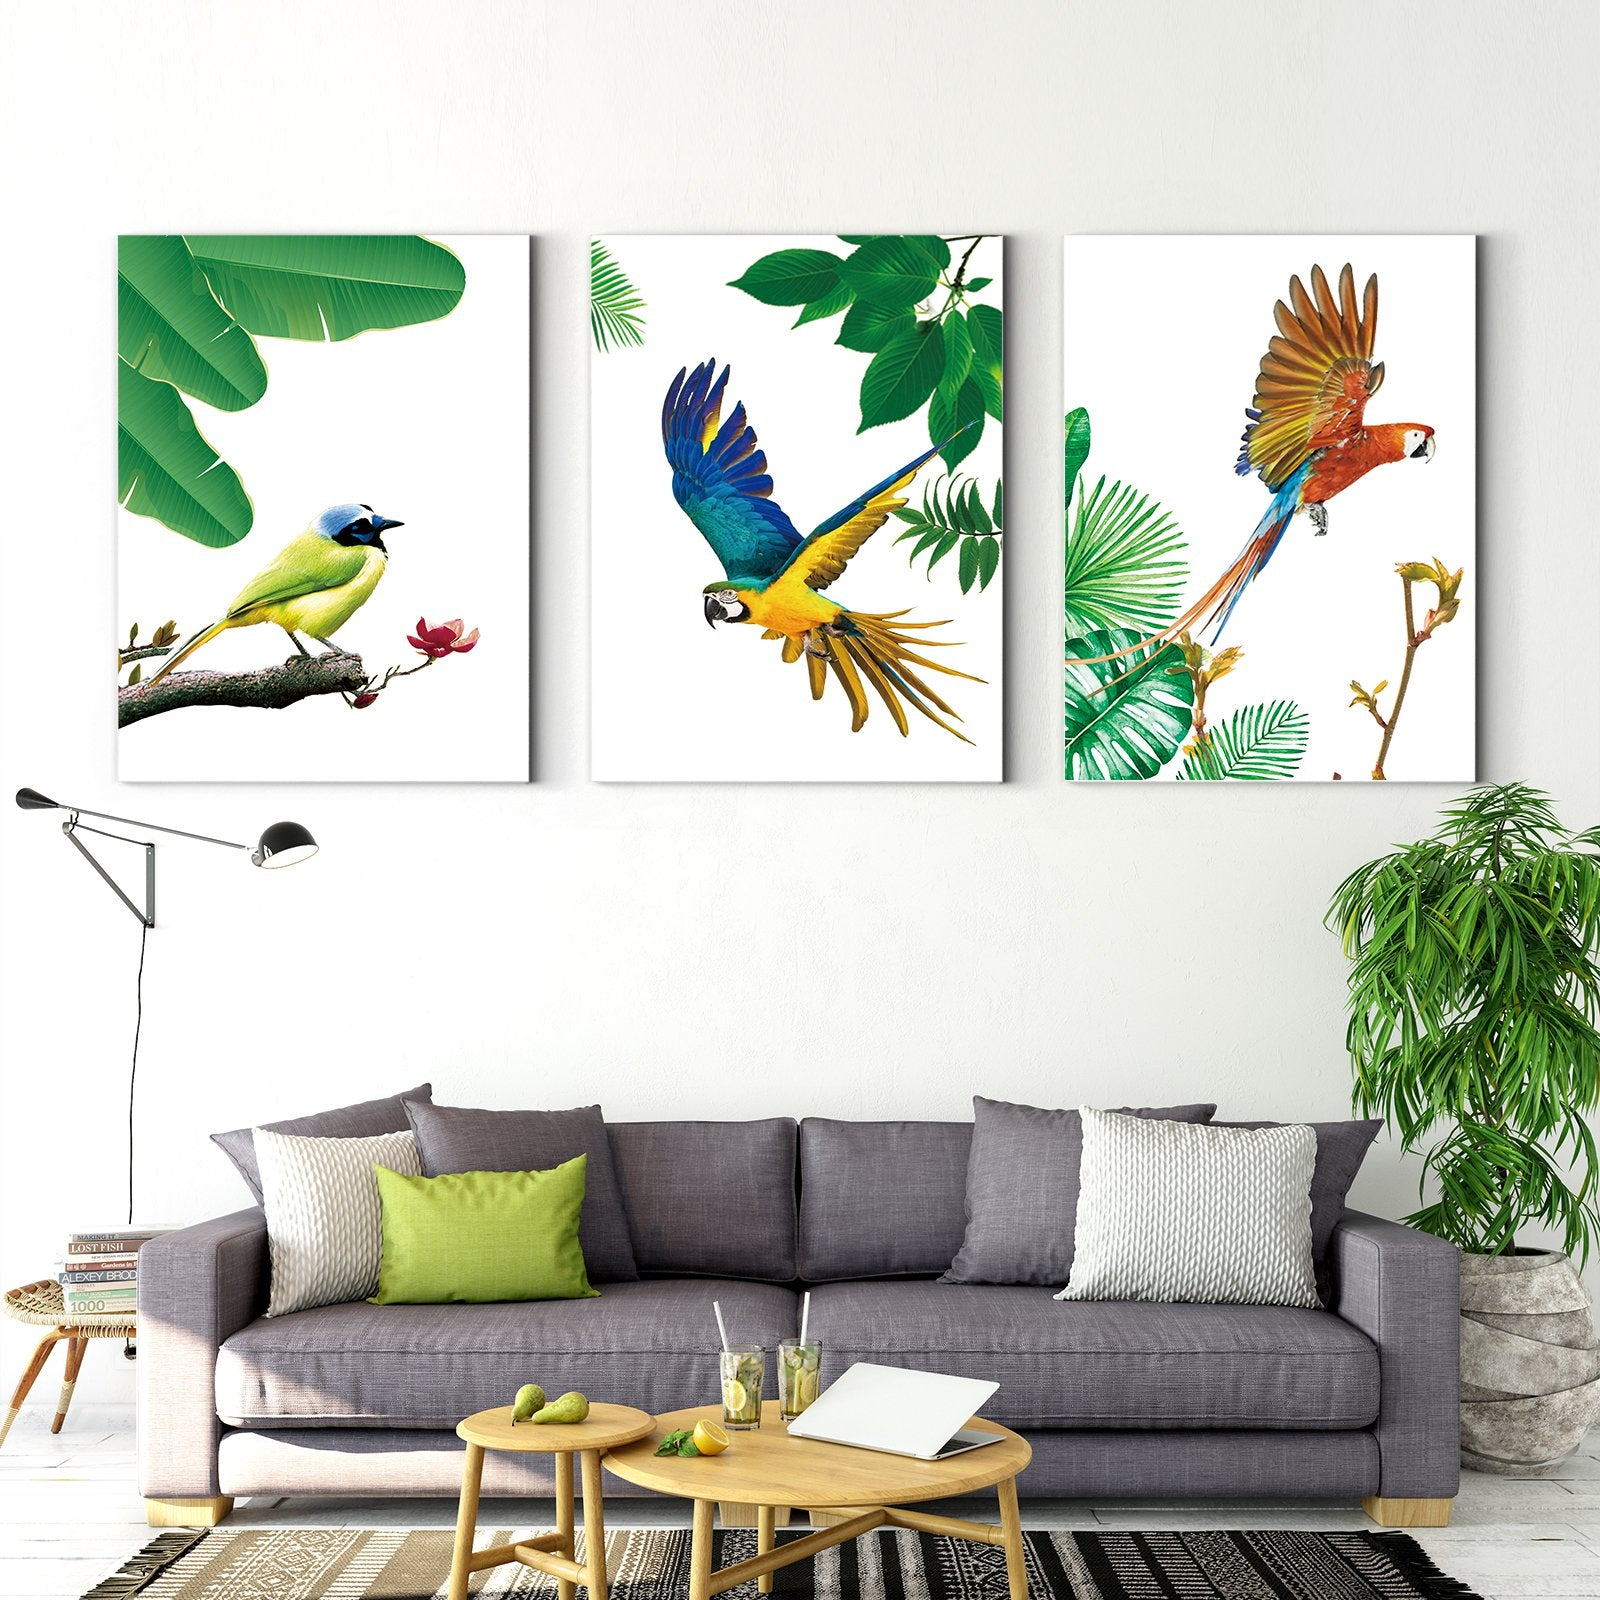 Flying Parrot - Animal Decorative Painting - Living Room-Multi Panel Wall Art030B